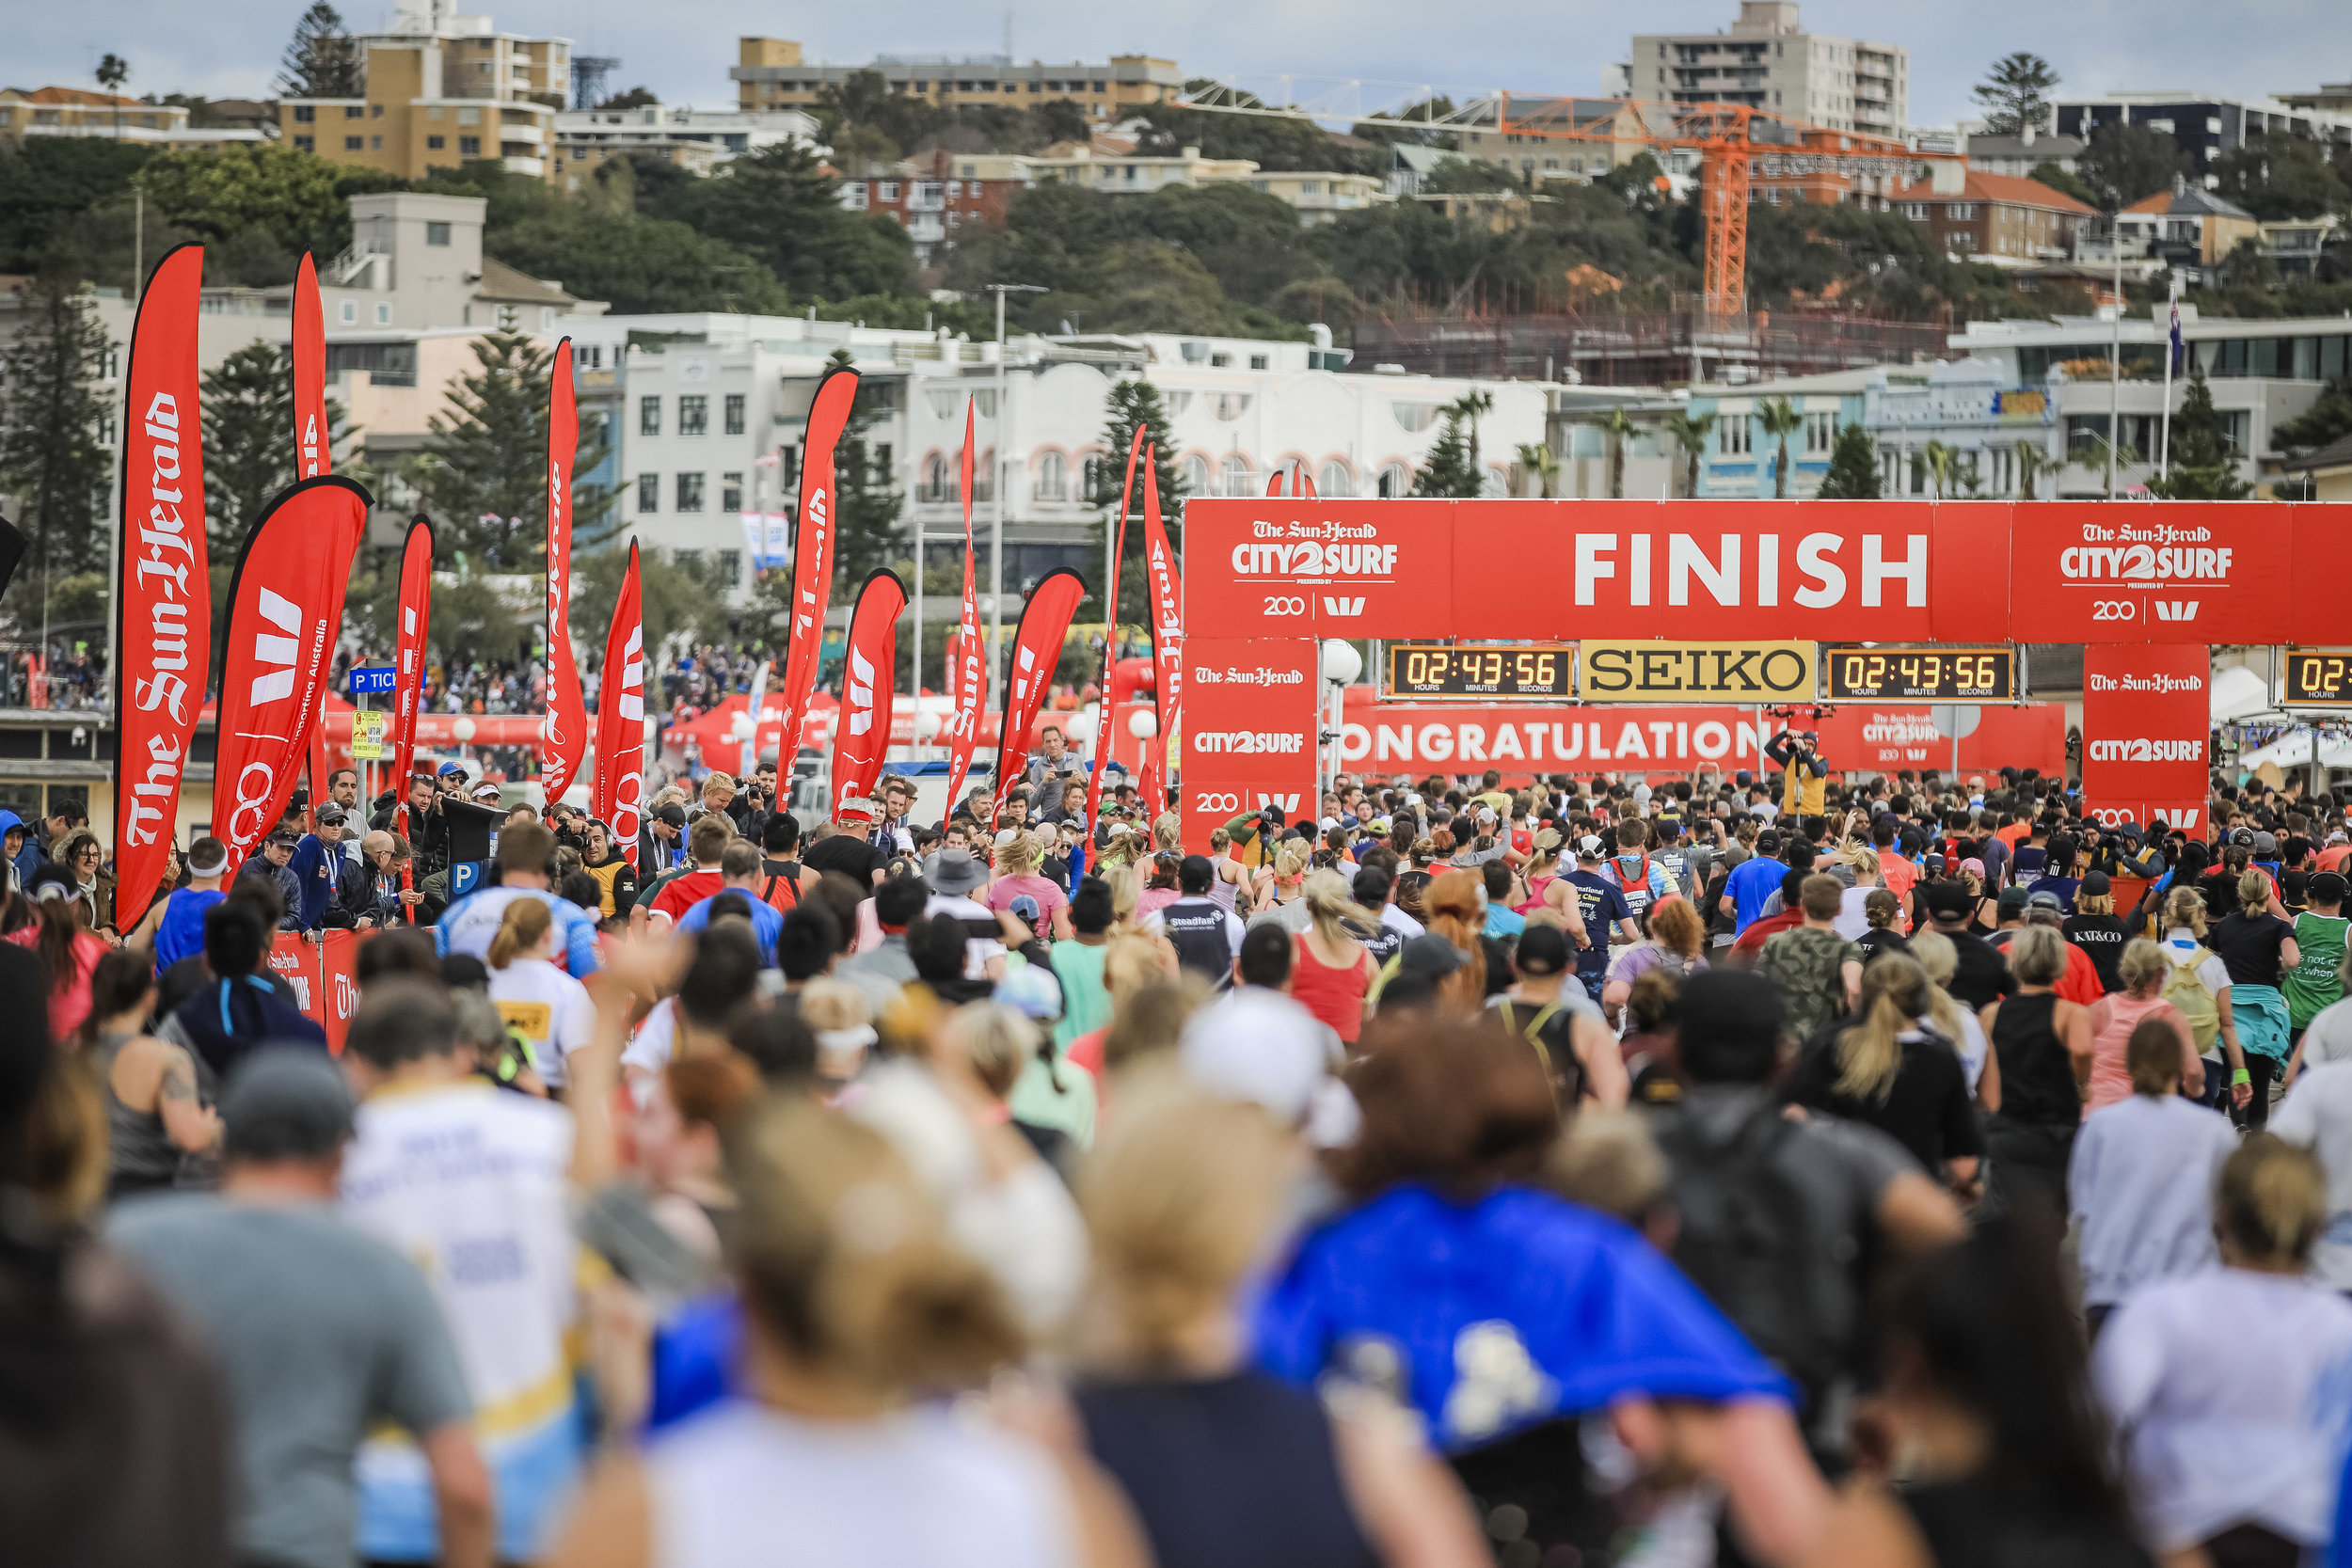 The Sun-Herald City2Surf © Salty Dingo 2019 CG-9667.jpg